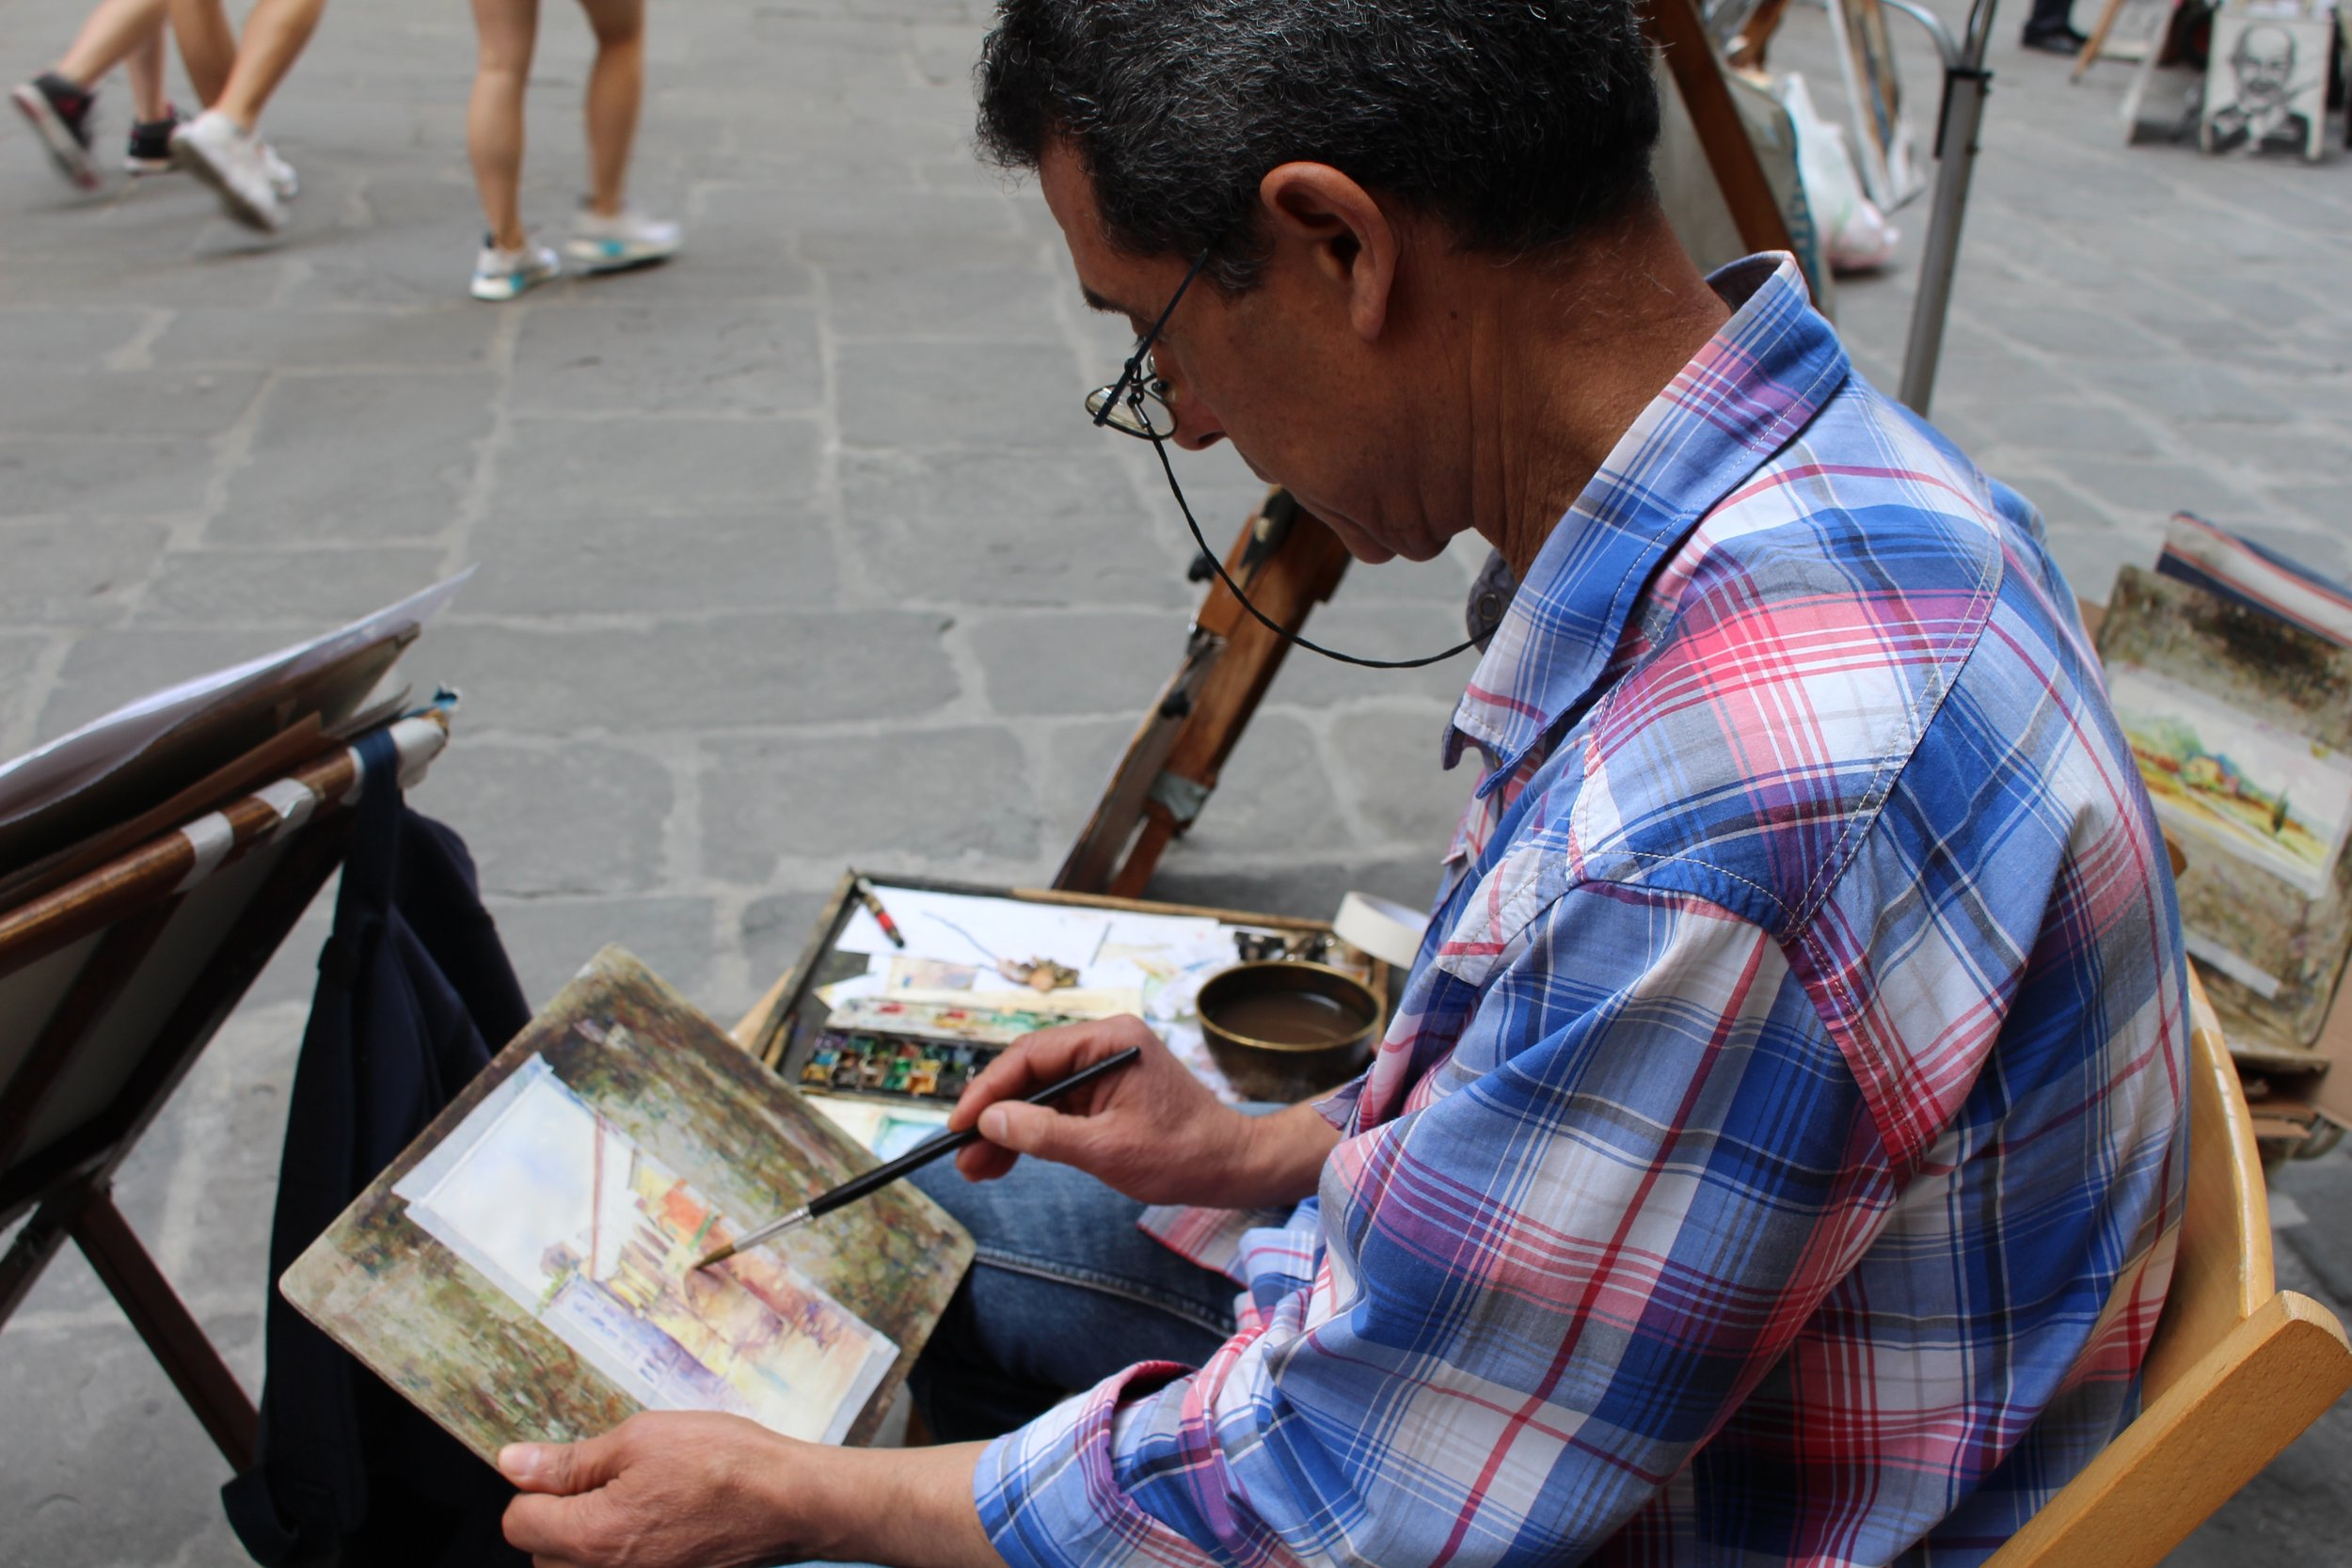 This was a kind hearted painter that saw my camera and said you can take a picture of me. He was painting outside the Uffizi in Florence.